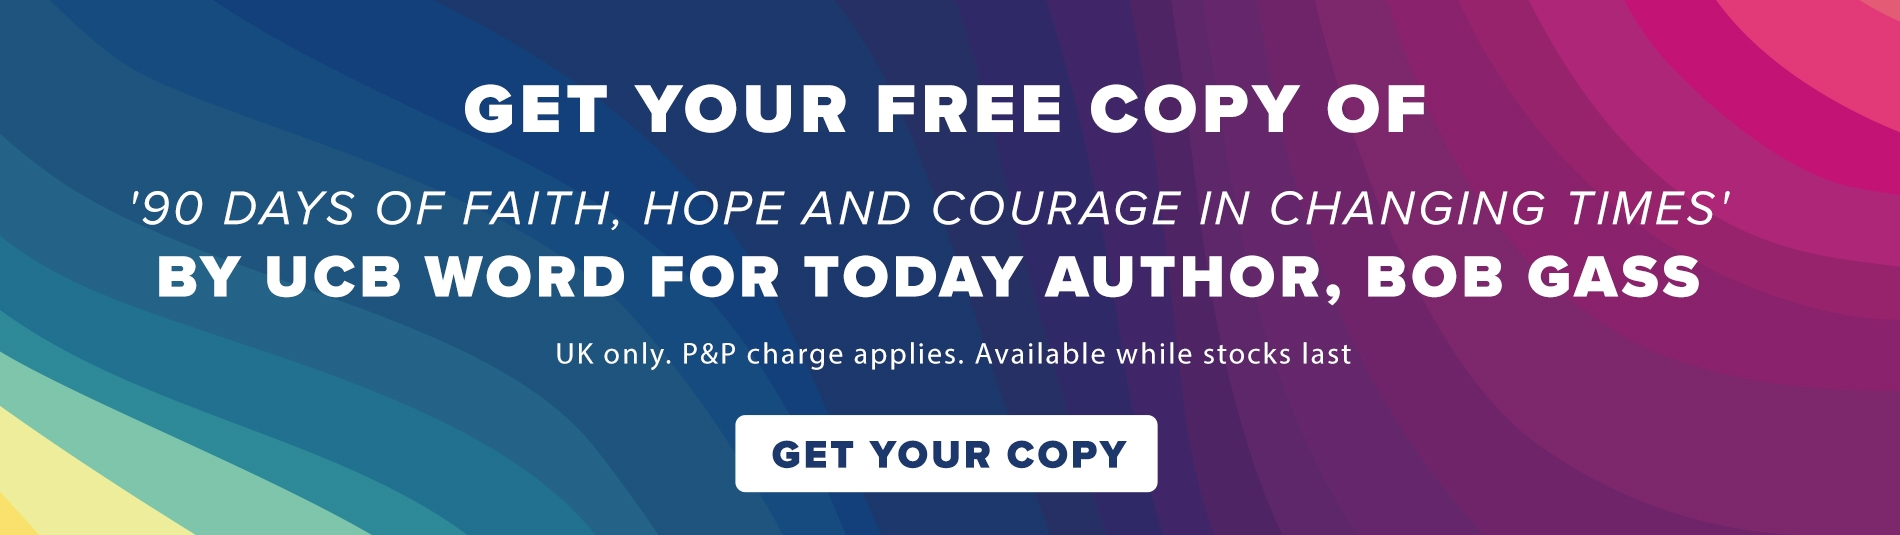 Get your copy of 90 days of Faith, Hope and Courage in changing times